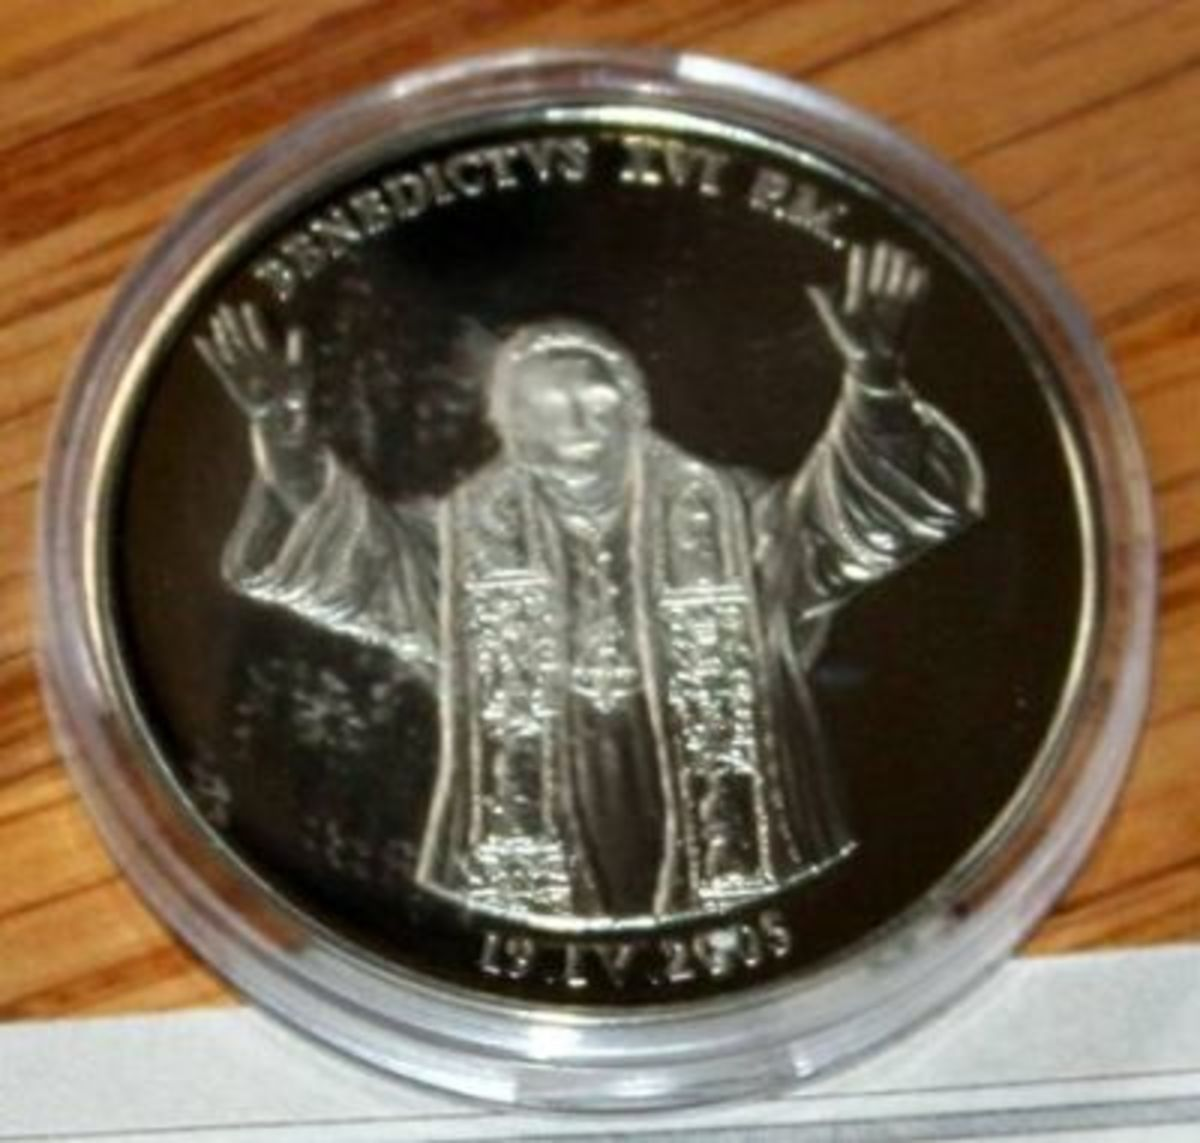 Here is a minted silver coin of Pope Benedict XVI